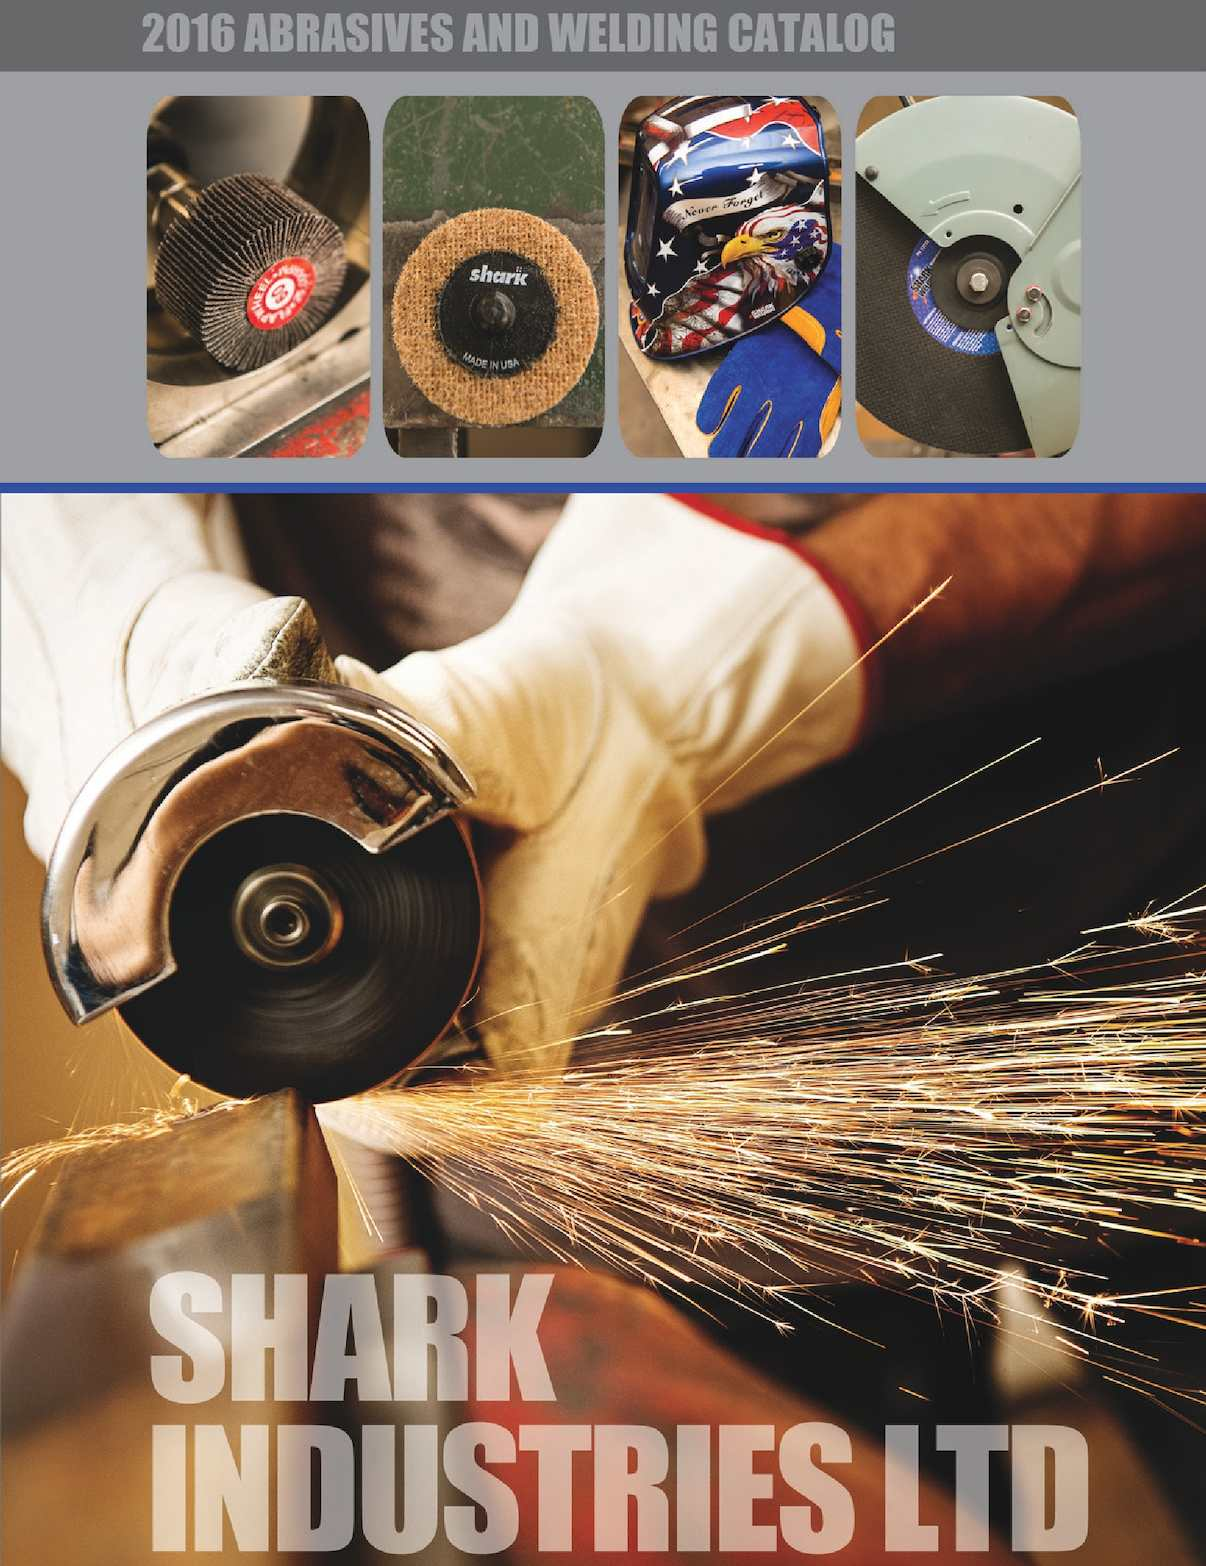 5-Pack Shark Welding 121-5 Shark 12-Inch by 1//8-Inch by 1-Inch 36-Grit Single Reinforced Cut-Off Wheel